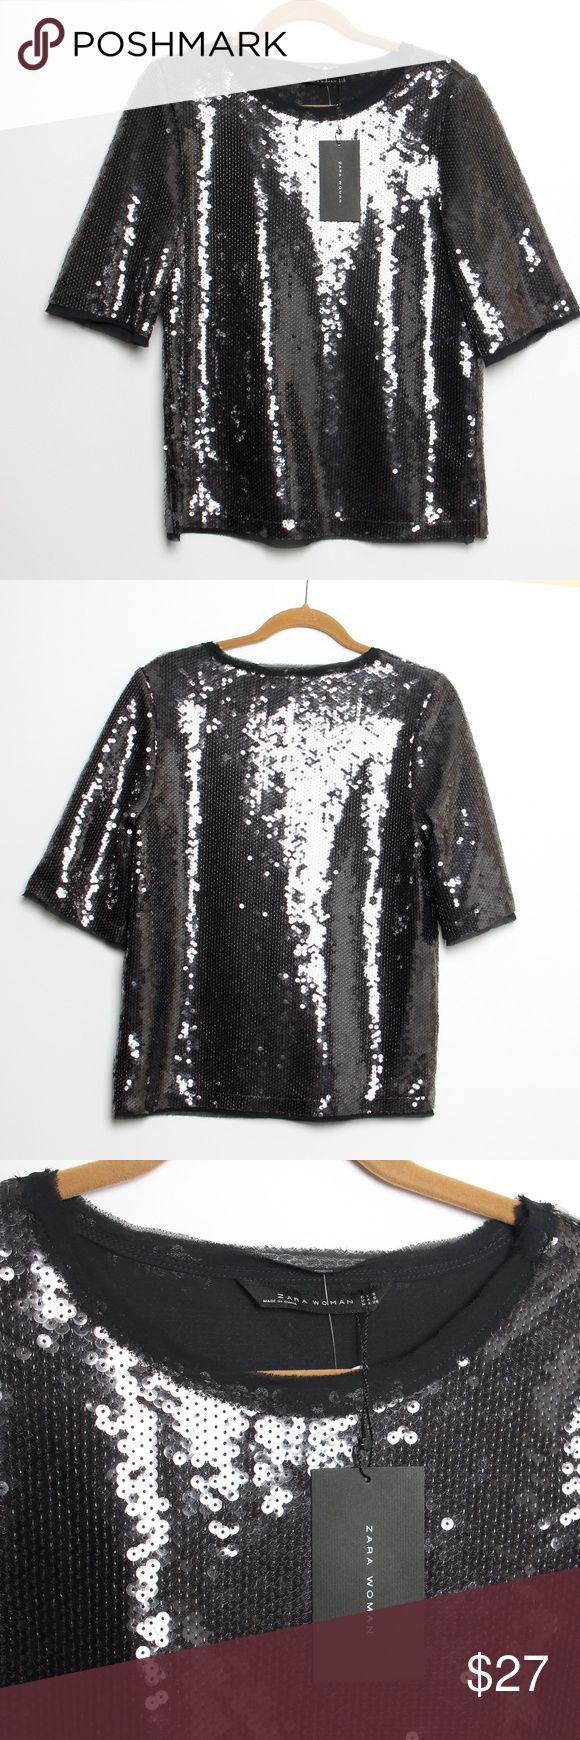 """NWT Zara Woman - Black Sequin short sleeve top Black Sequined short sleeve top by Zara Woman.  Size is S, but runs larger, more like a M or even a small L.  Please see measurements.  Lined with a chiffon like material, which is also attached at the bottom of sleeves and hem and peaks out under the sequined material.  Approximately: Bust laid flat pit to pit: 20"""" measures the same at waist and bottom hem Length from middle of shoulder to hem: 24"""" Fabric content: 100% polyester Sleeve Length…"""